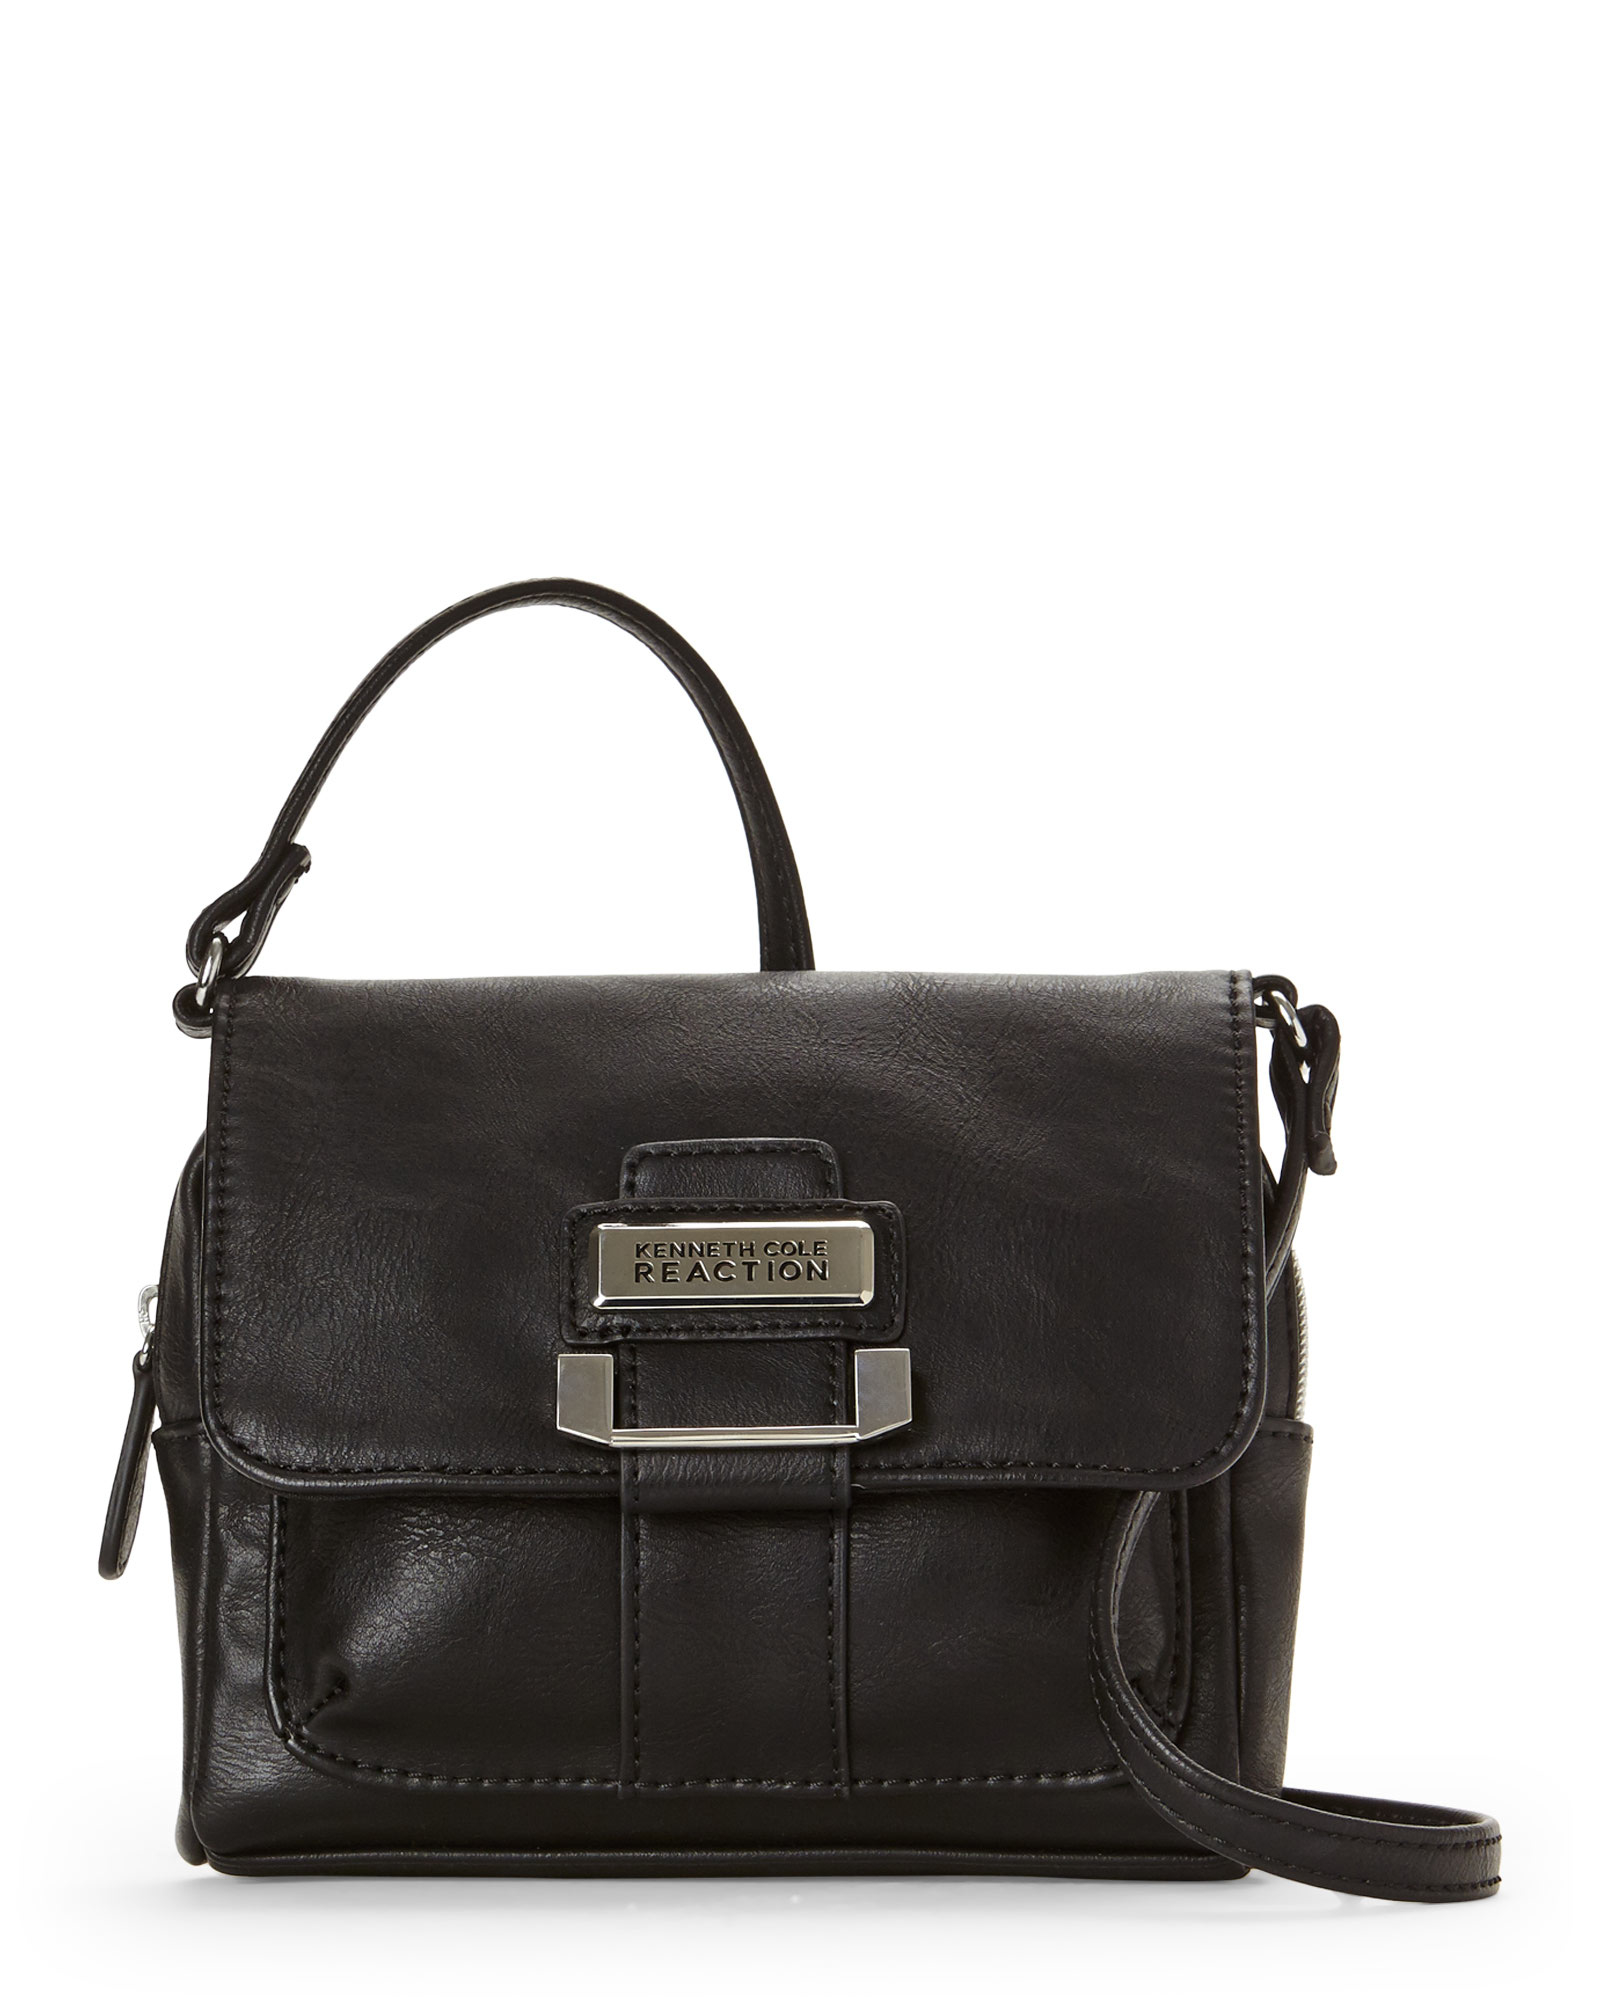 c7f174bca2a8 Lyst - Kenneth Cole Reaction Kenneth Cole Black Retrograde Mini ...